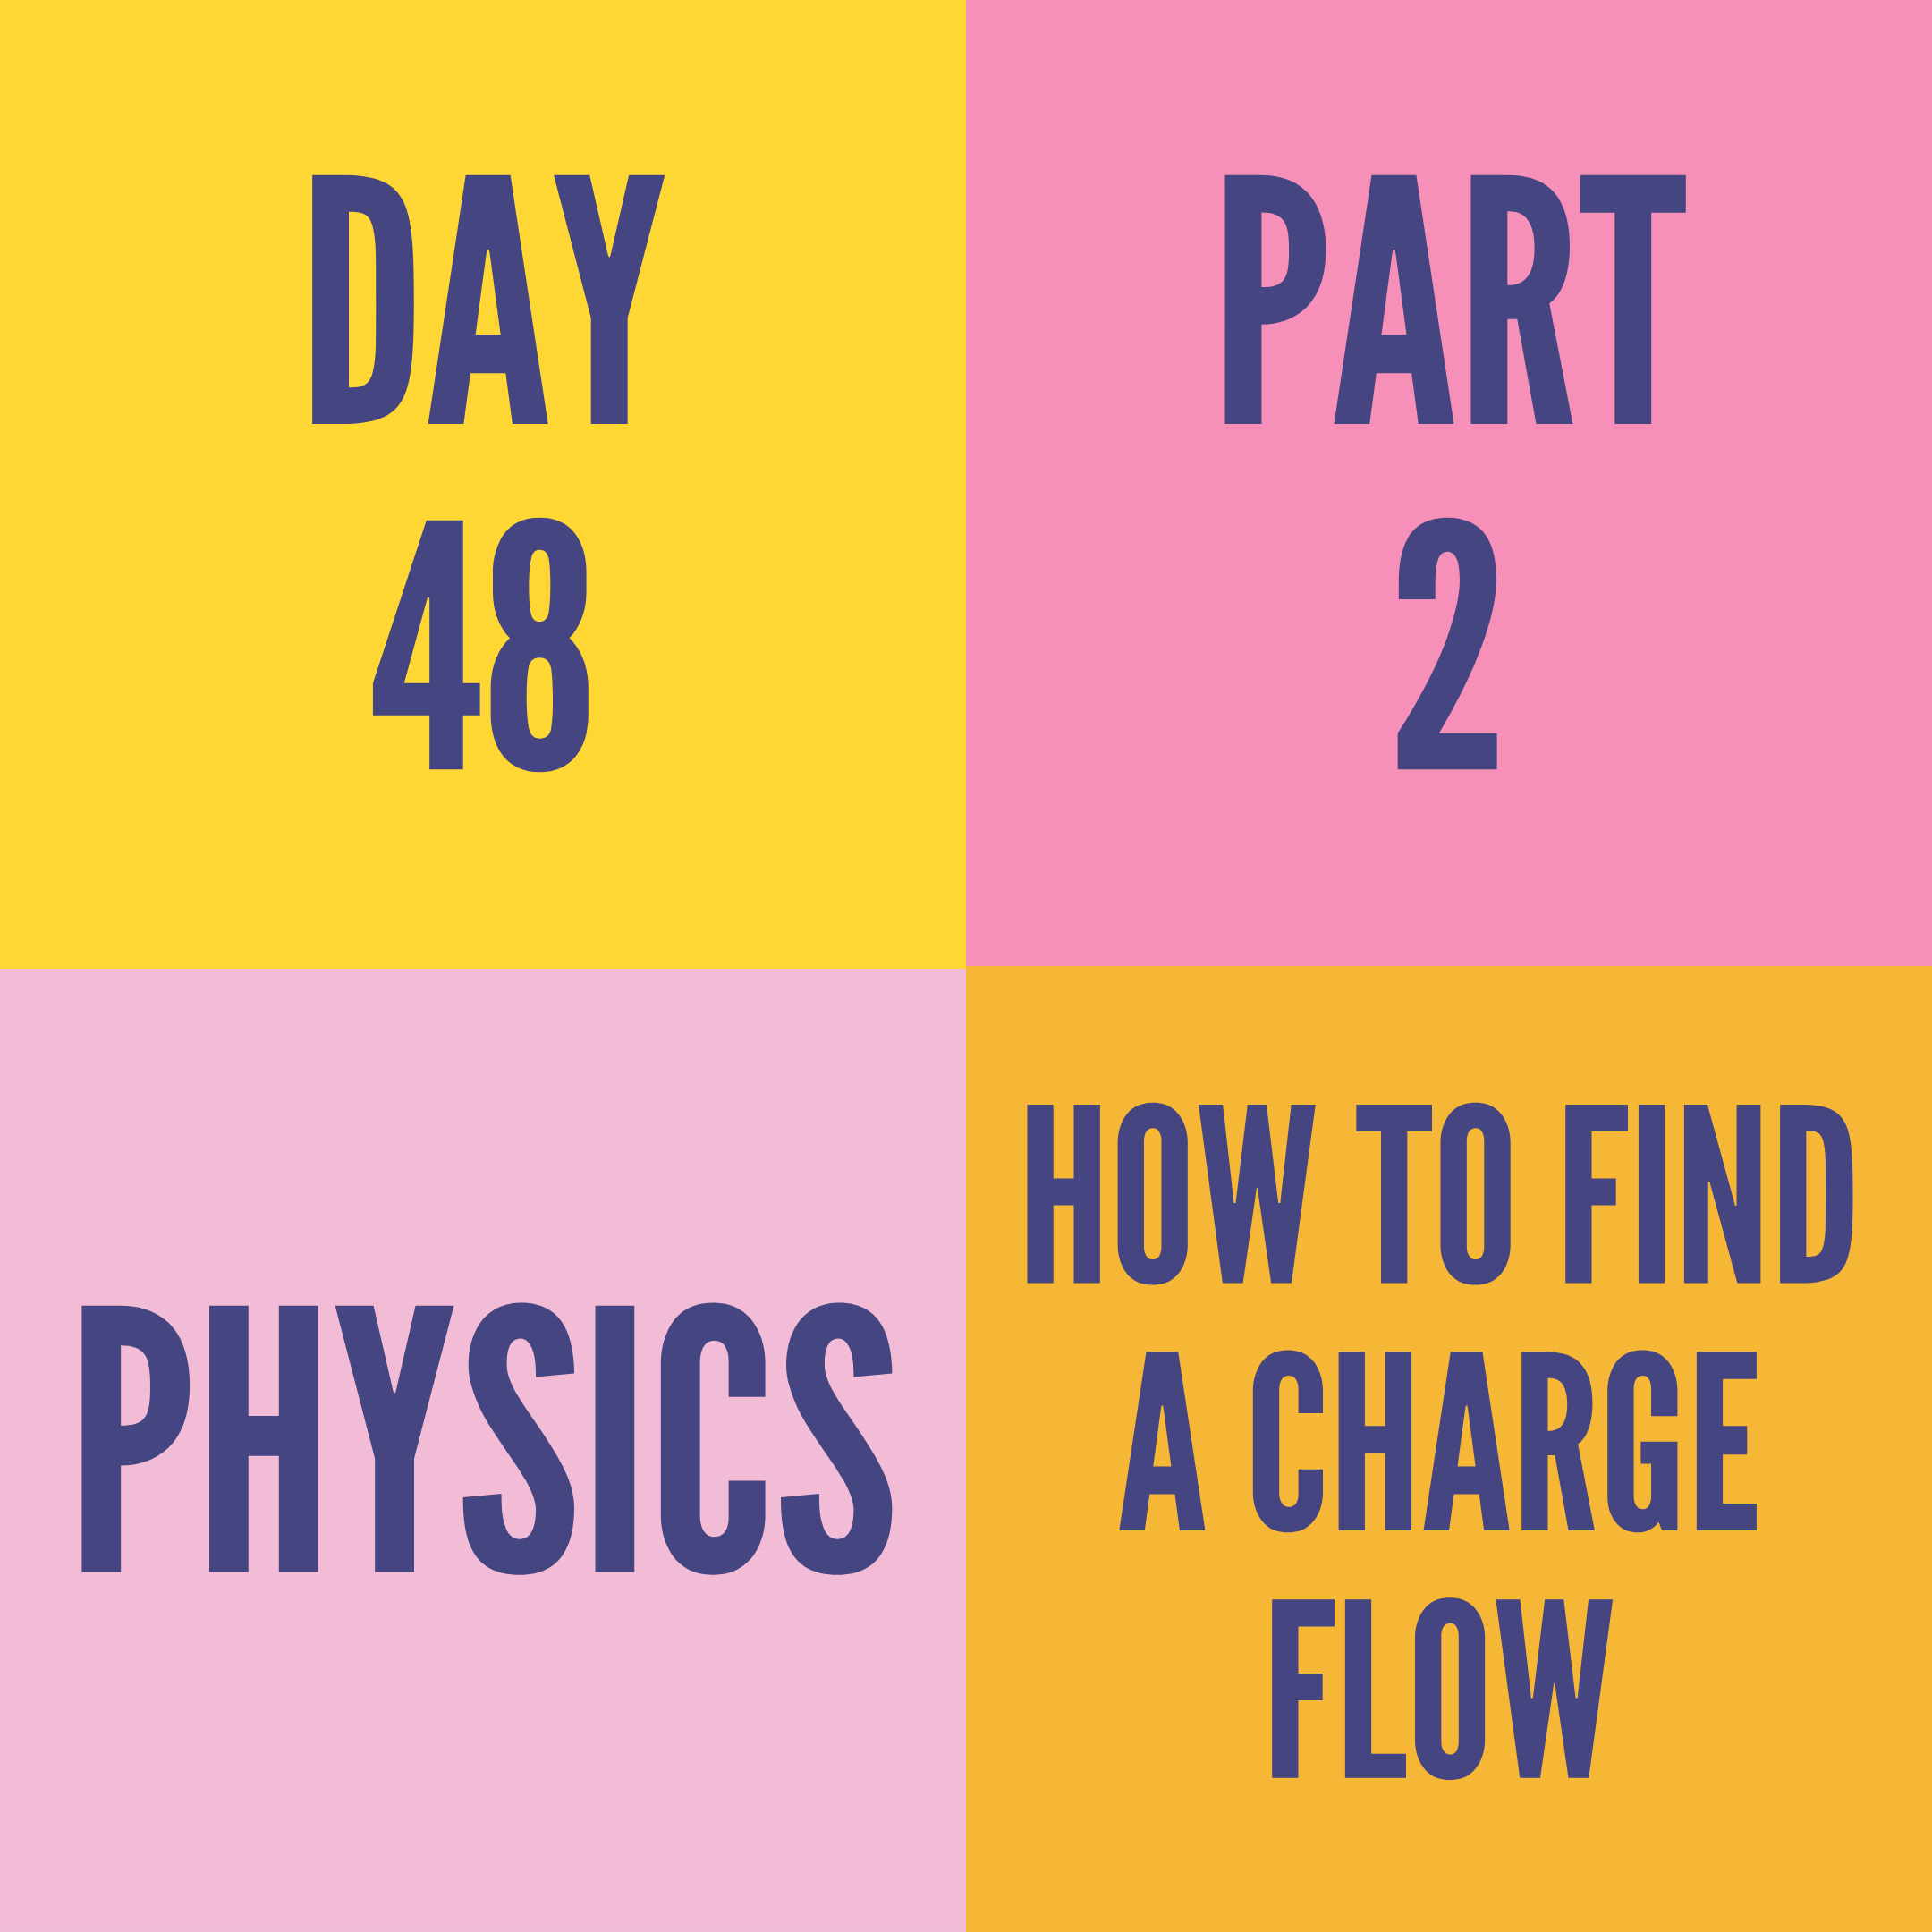 DAY-48 PART-2  HOW TO FIND A CHARGE FLOW